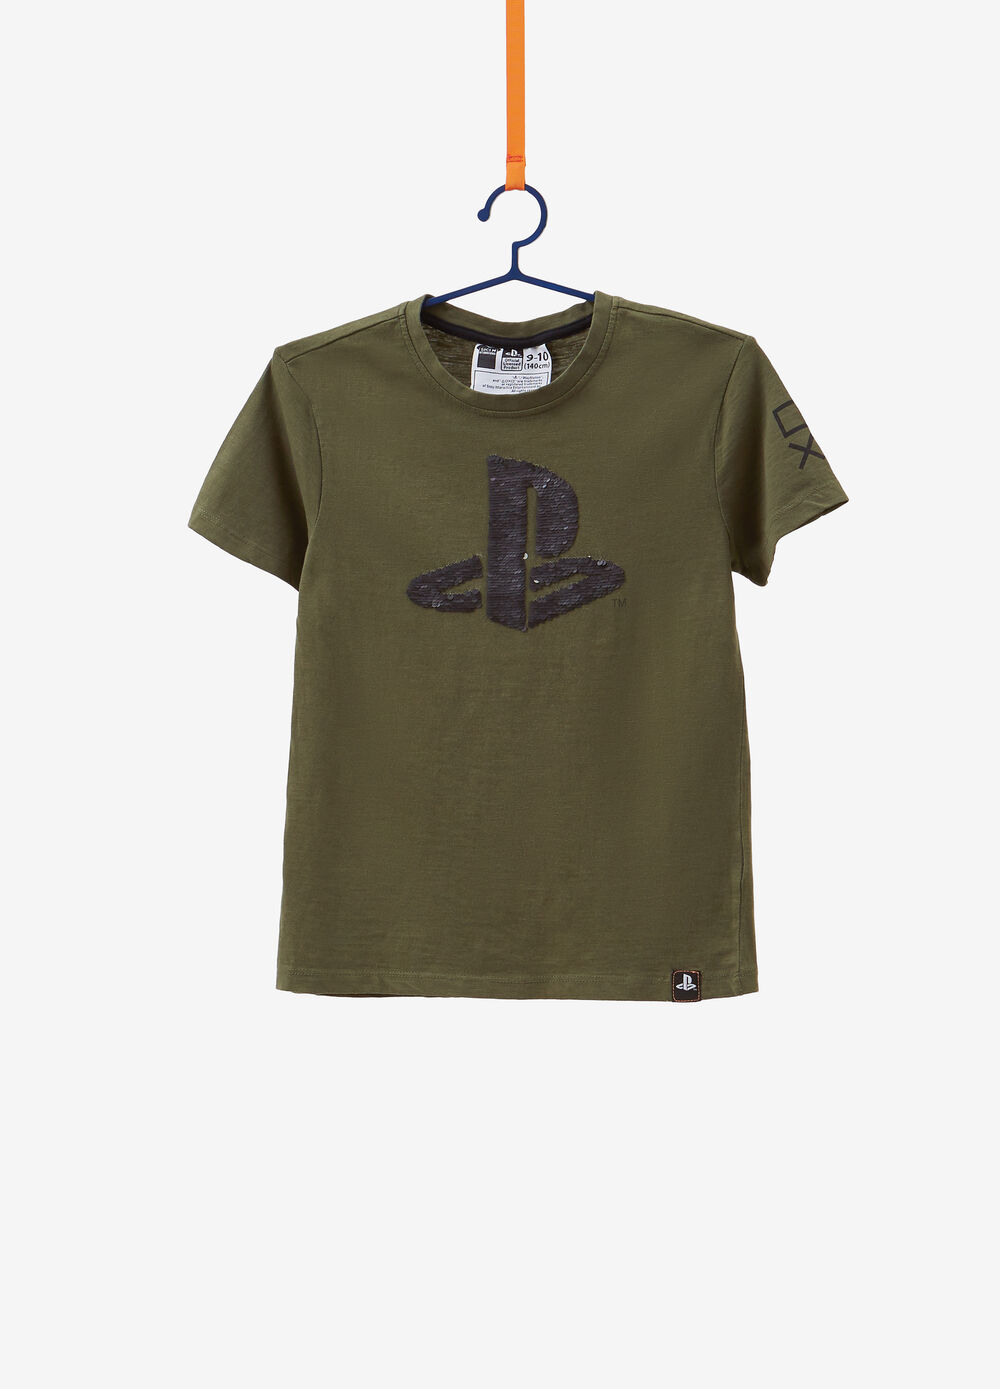 100% cotton T-shirt with sequins and Playstation print